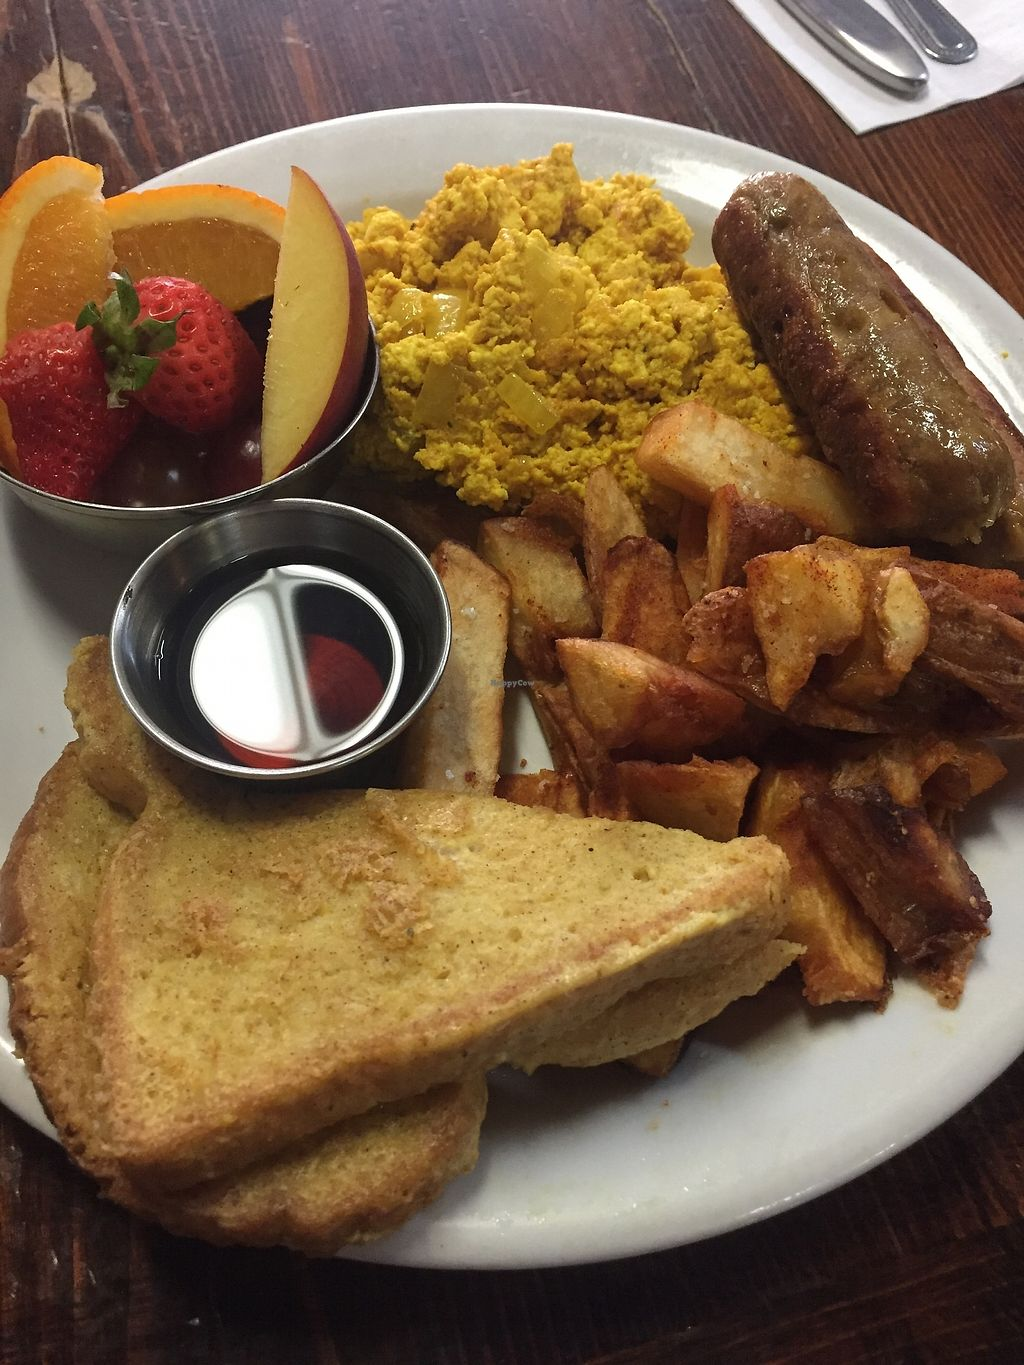 """Photo of REMOVED: D-Beatstro  by <a href=""""/members/profile/Yasminesan"""">Yasminesan</a> <br/>Breakfast place with subbed French toast <br/> October 29, 2017  - <a href='/contact/abuse/image/59326/319761'>Report</a>"""